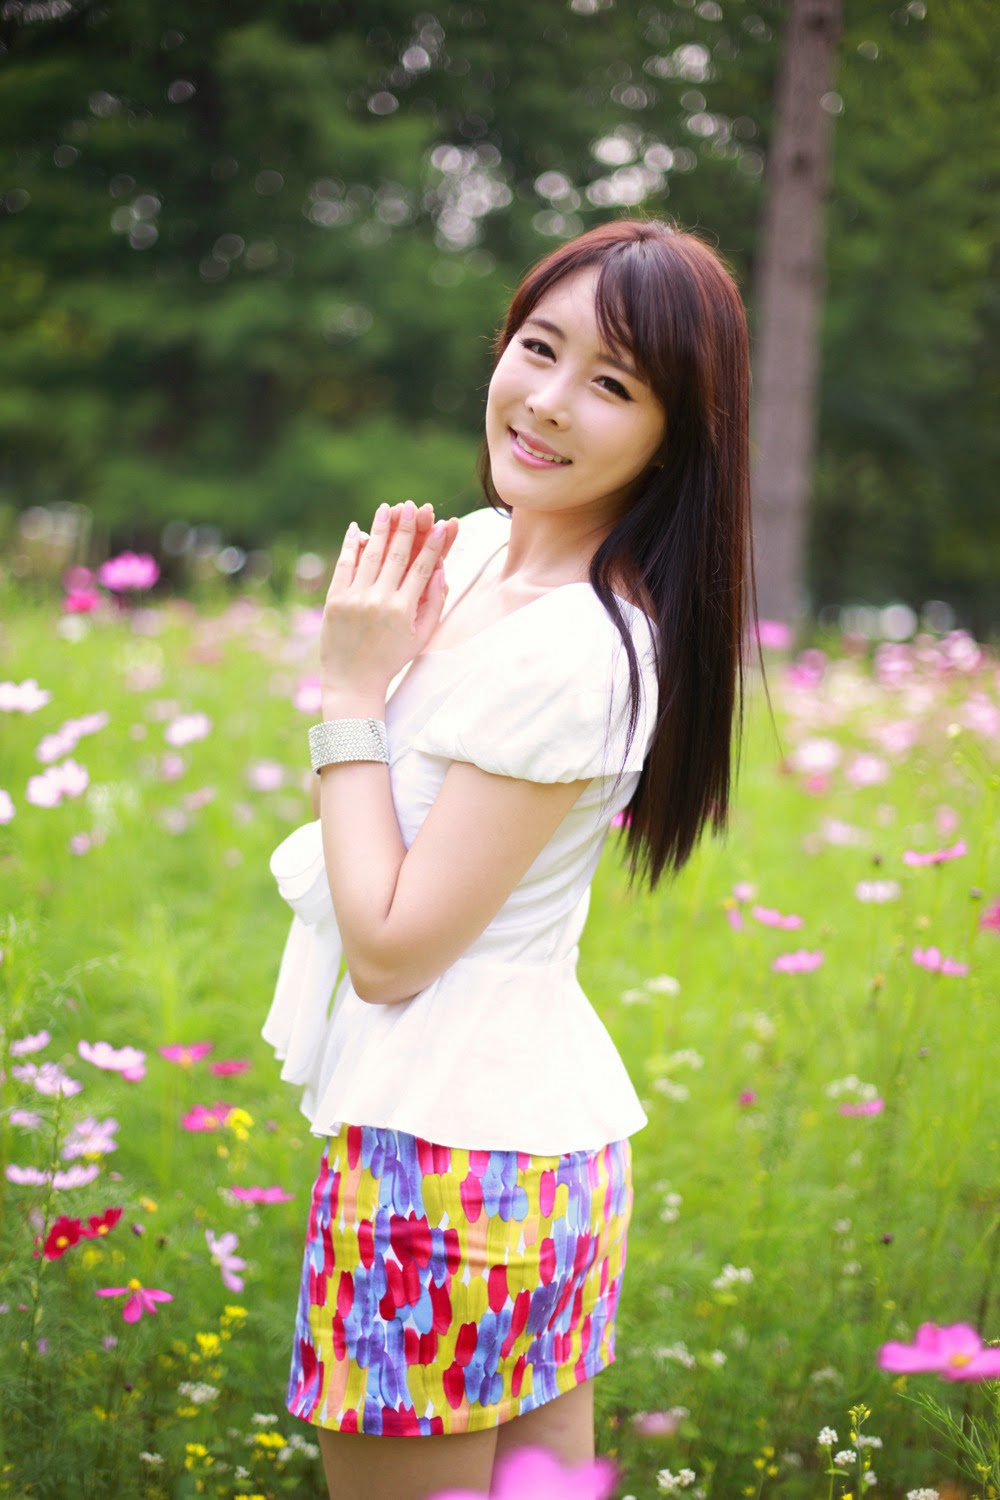 Kim Ji Min - shots in garden